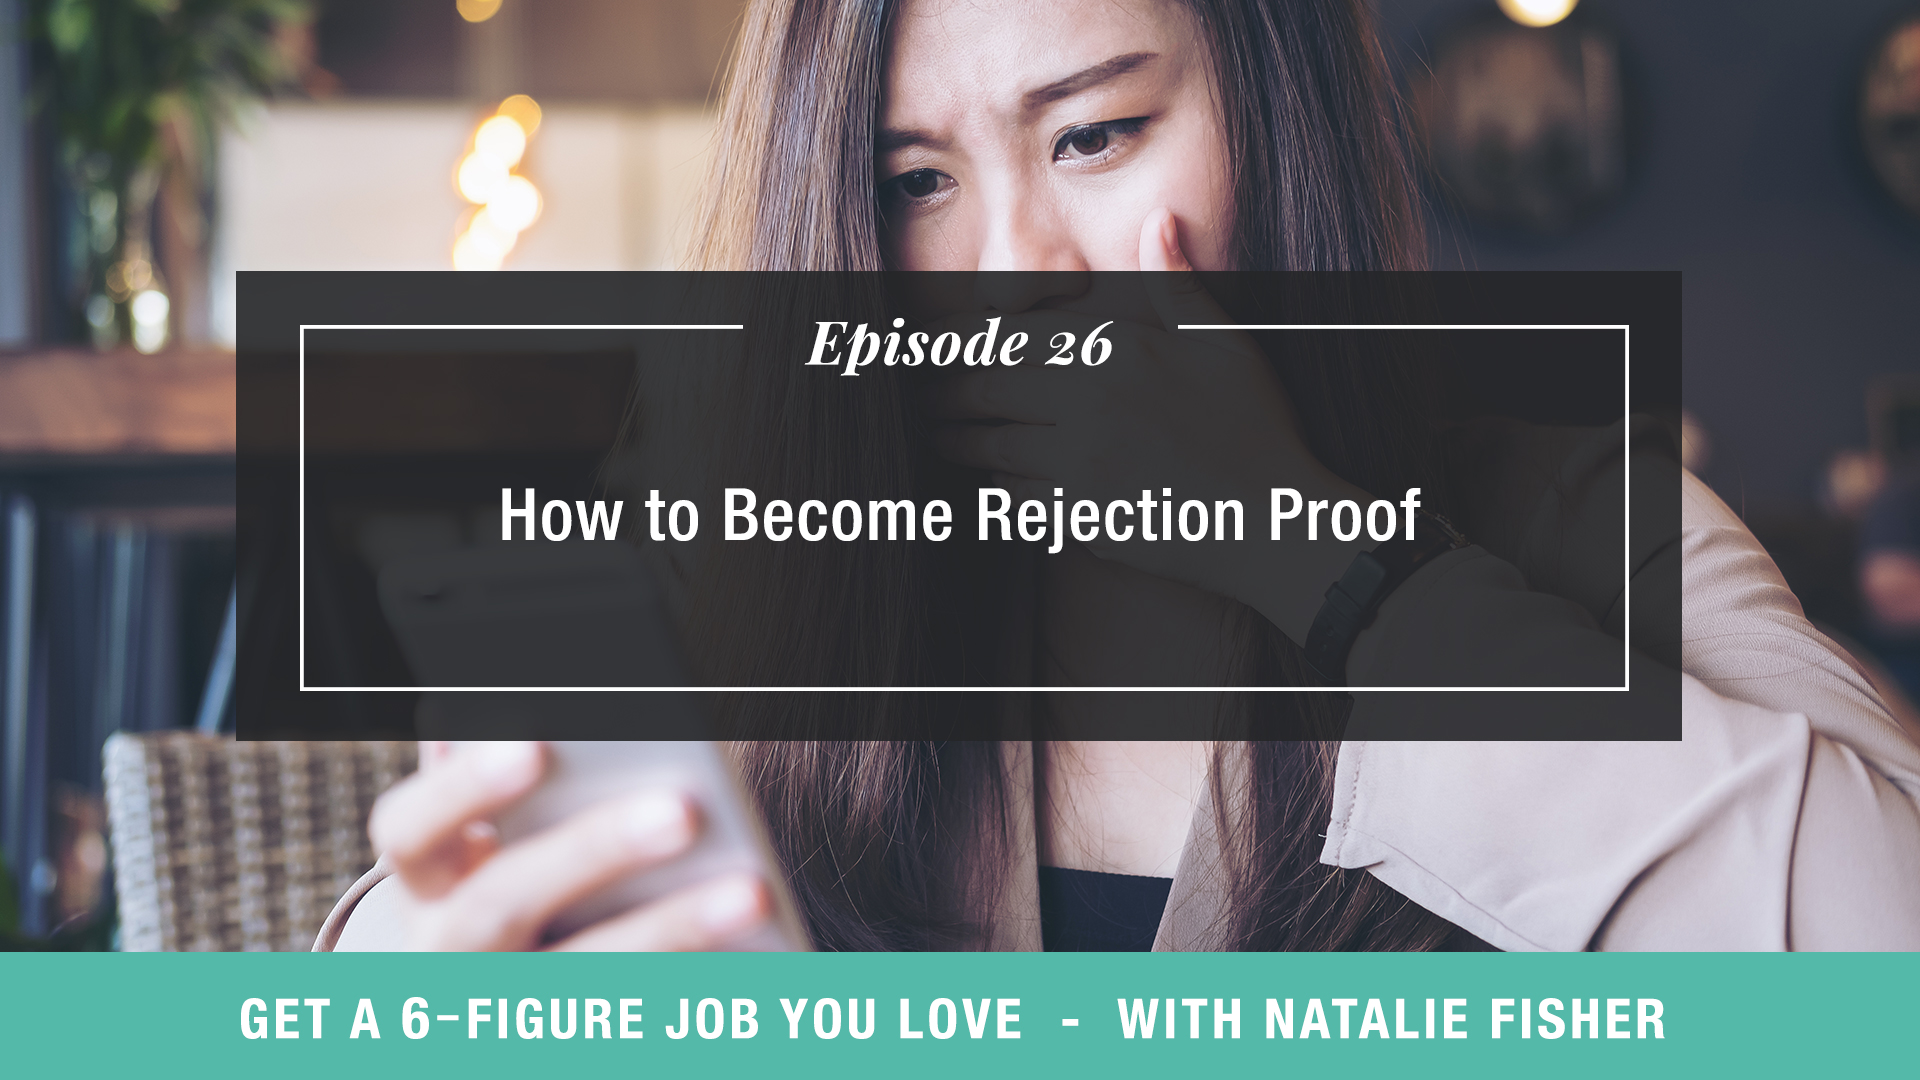 How to Become Rejection Proof